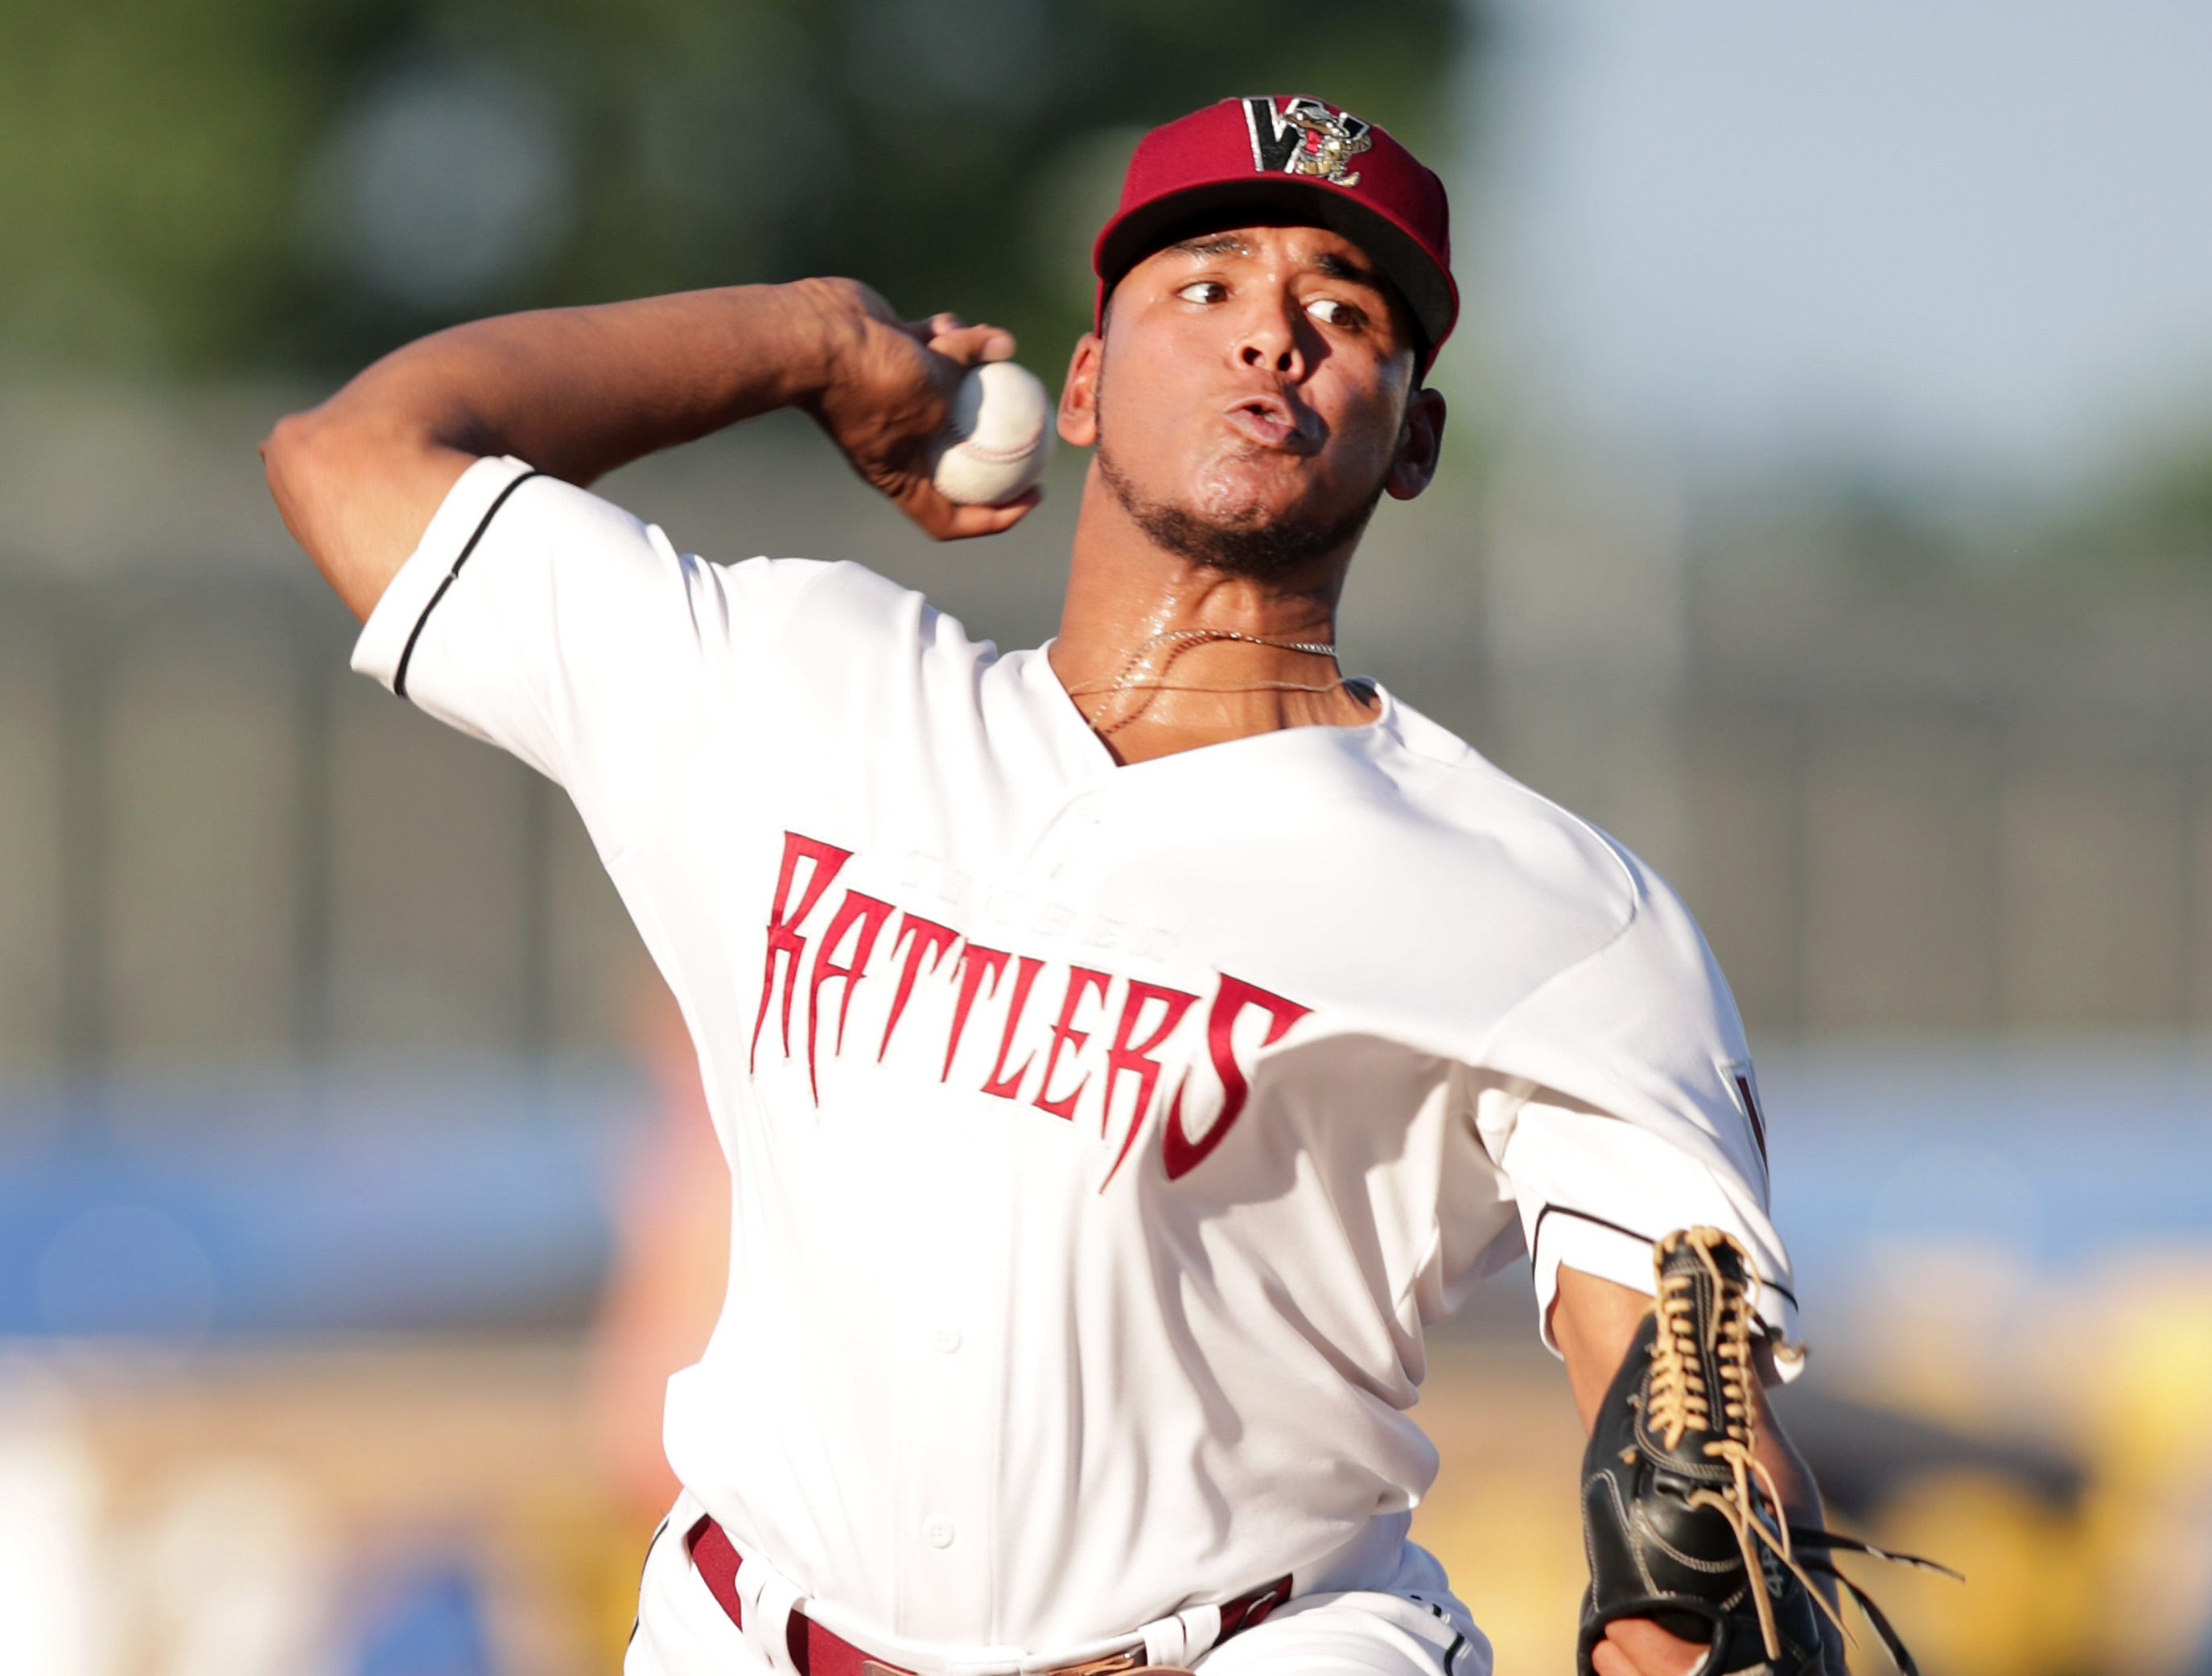 Milwaukee Brewers' pitcher Freddy Peralta, on temporary assignment during the All-Star break, starts for the Wisconsin Timber Rattlers as thet take on the Dayton Dragons during their baseball game at Neuroscience Group Field at Fox Cities Stadium on Wednesday, July 18, 2018 in Grand Chute, Wis.  Brewers' pitcher Matt Albers also pitched as part of a rehab assignment.